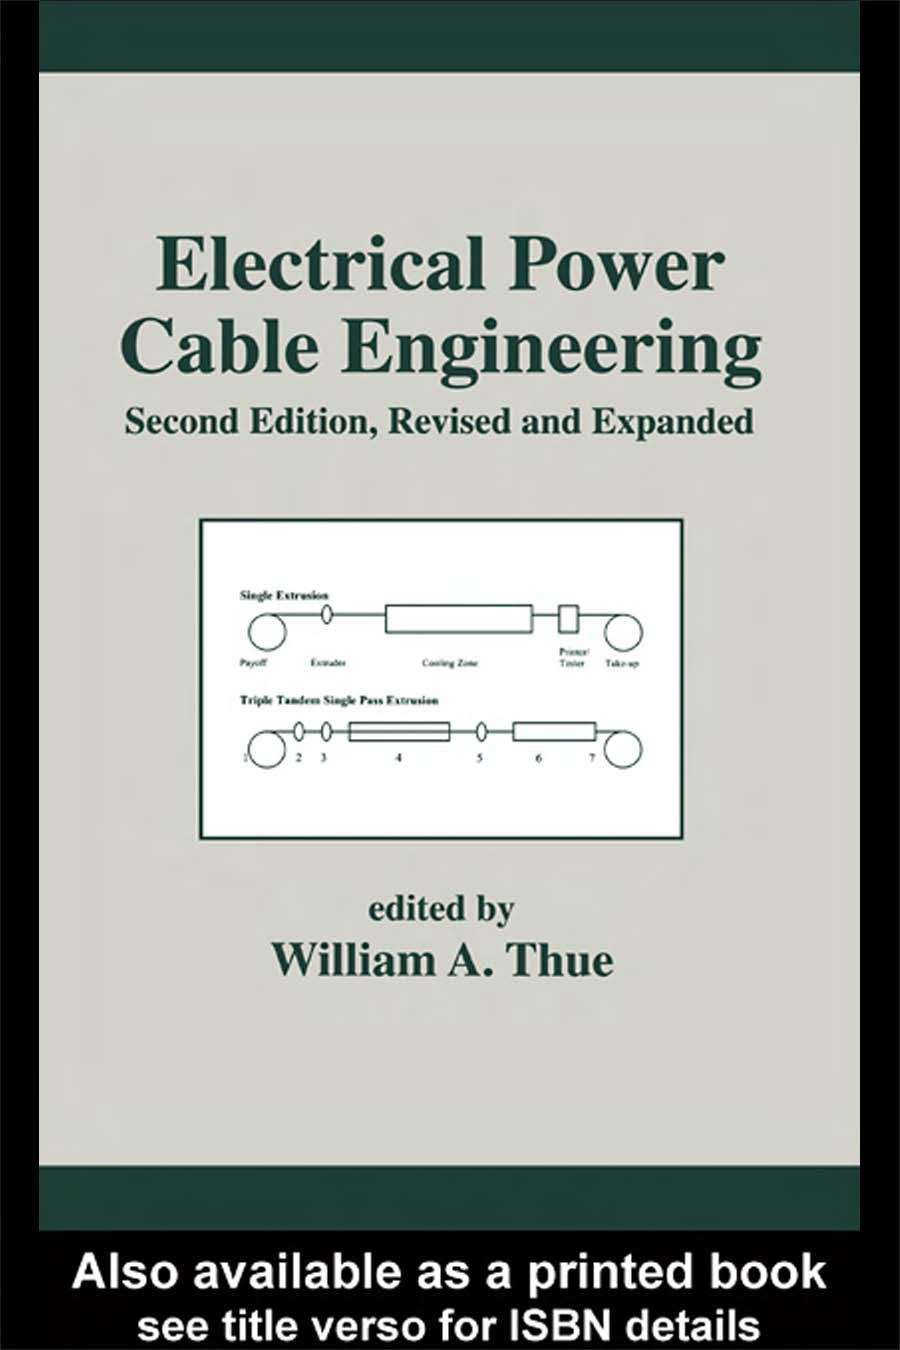 Power Quality Books Pdf